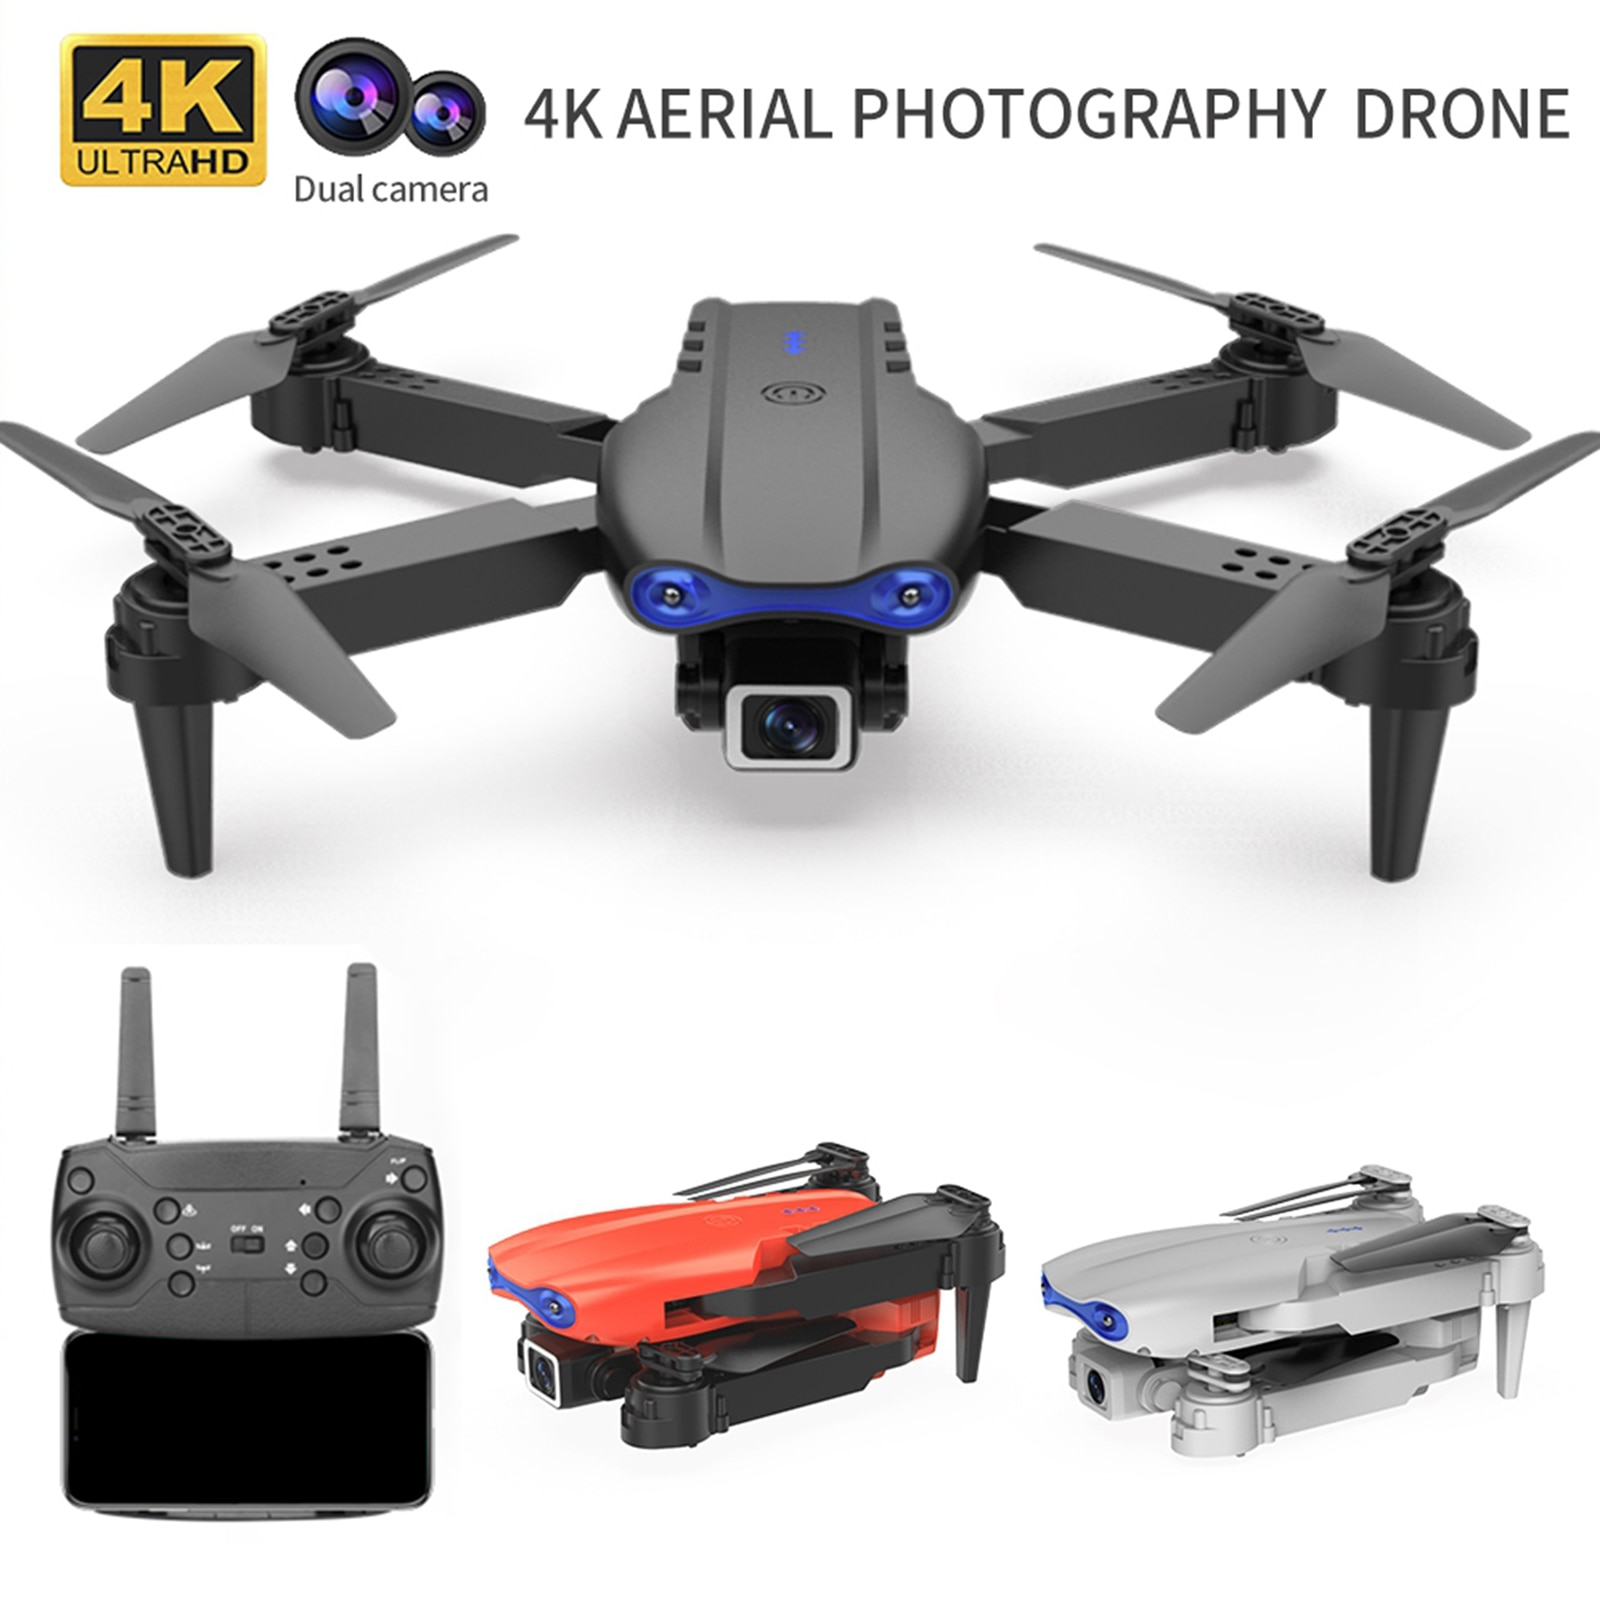 2021 NEW K3 Drone 4K HD Wide-angle Dual Camera WIFI FPV RC Drone Follow Me RC Quadcopter Toys RC Helicopter w/ Camera Selfie